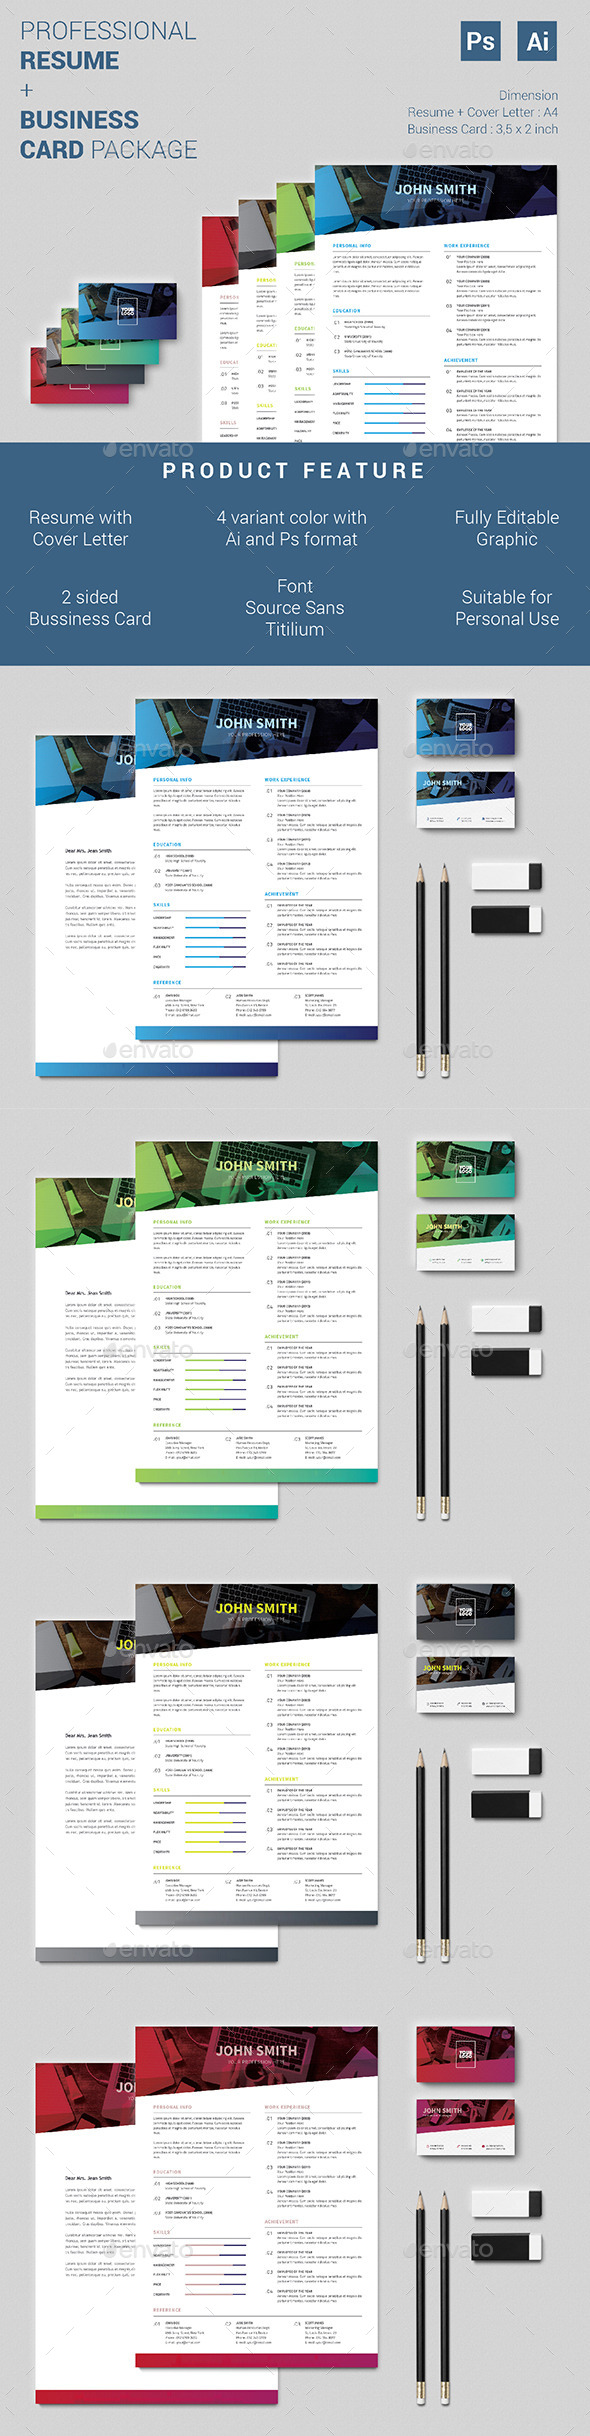 Resume and Business Card Package